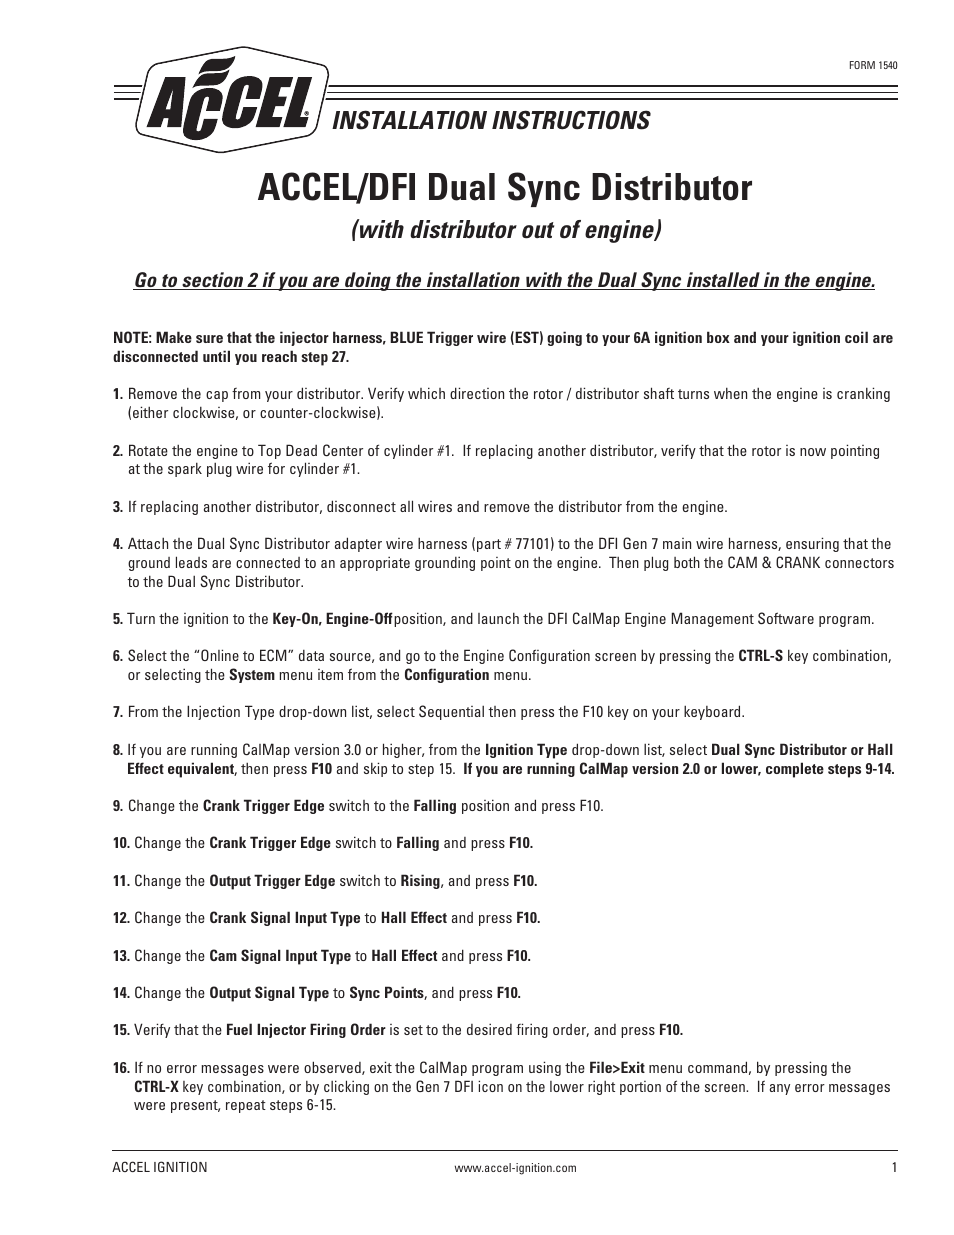 medium resolution of mallory ignition accel dfi dual sync distributor 77100 page1 mallory ignition accel dfi dual sync distributor